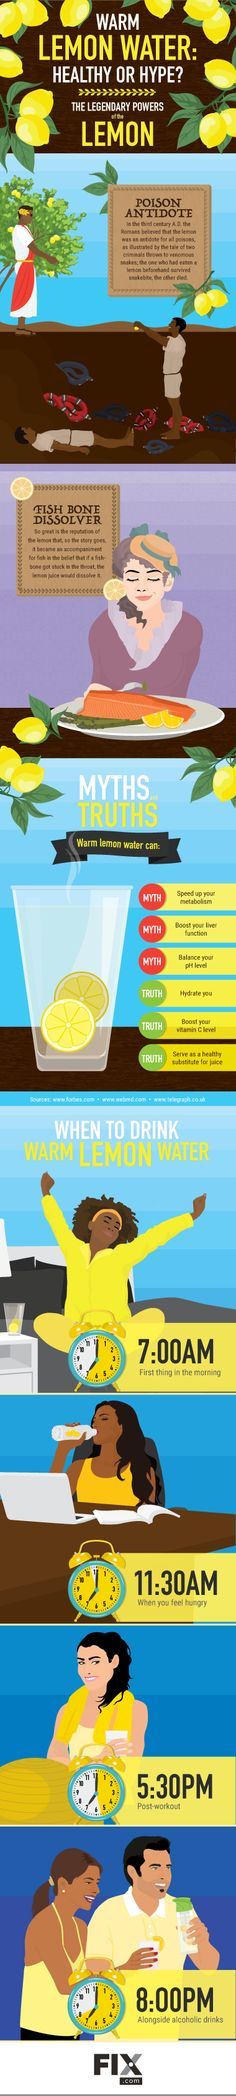 A glass of warm lemon water is a great way to start the day with some hydration,… - Health Cleanse Drinking Warm Lemon Water, Lemon Water In The Morning, Lemon Water Benefits, Veggie Smoothies, Fruit Infused Water, Health Cleanse, Health Trends, Start The Day, Weight Loss Smoothies